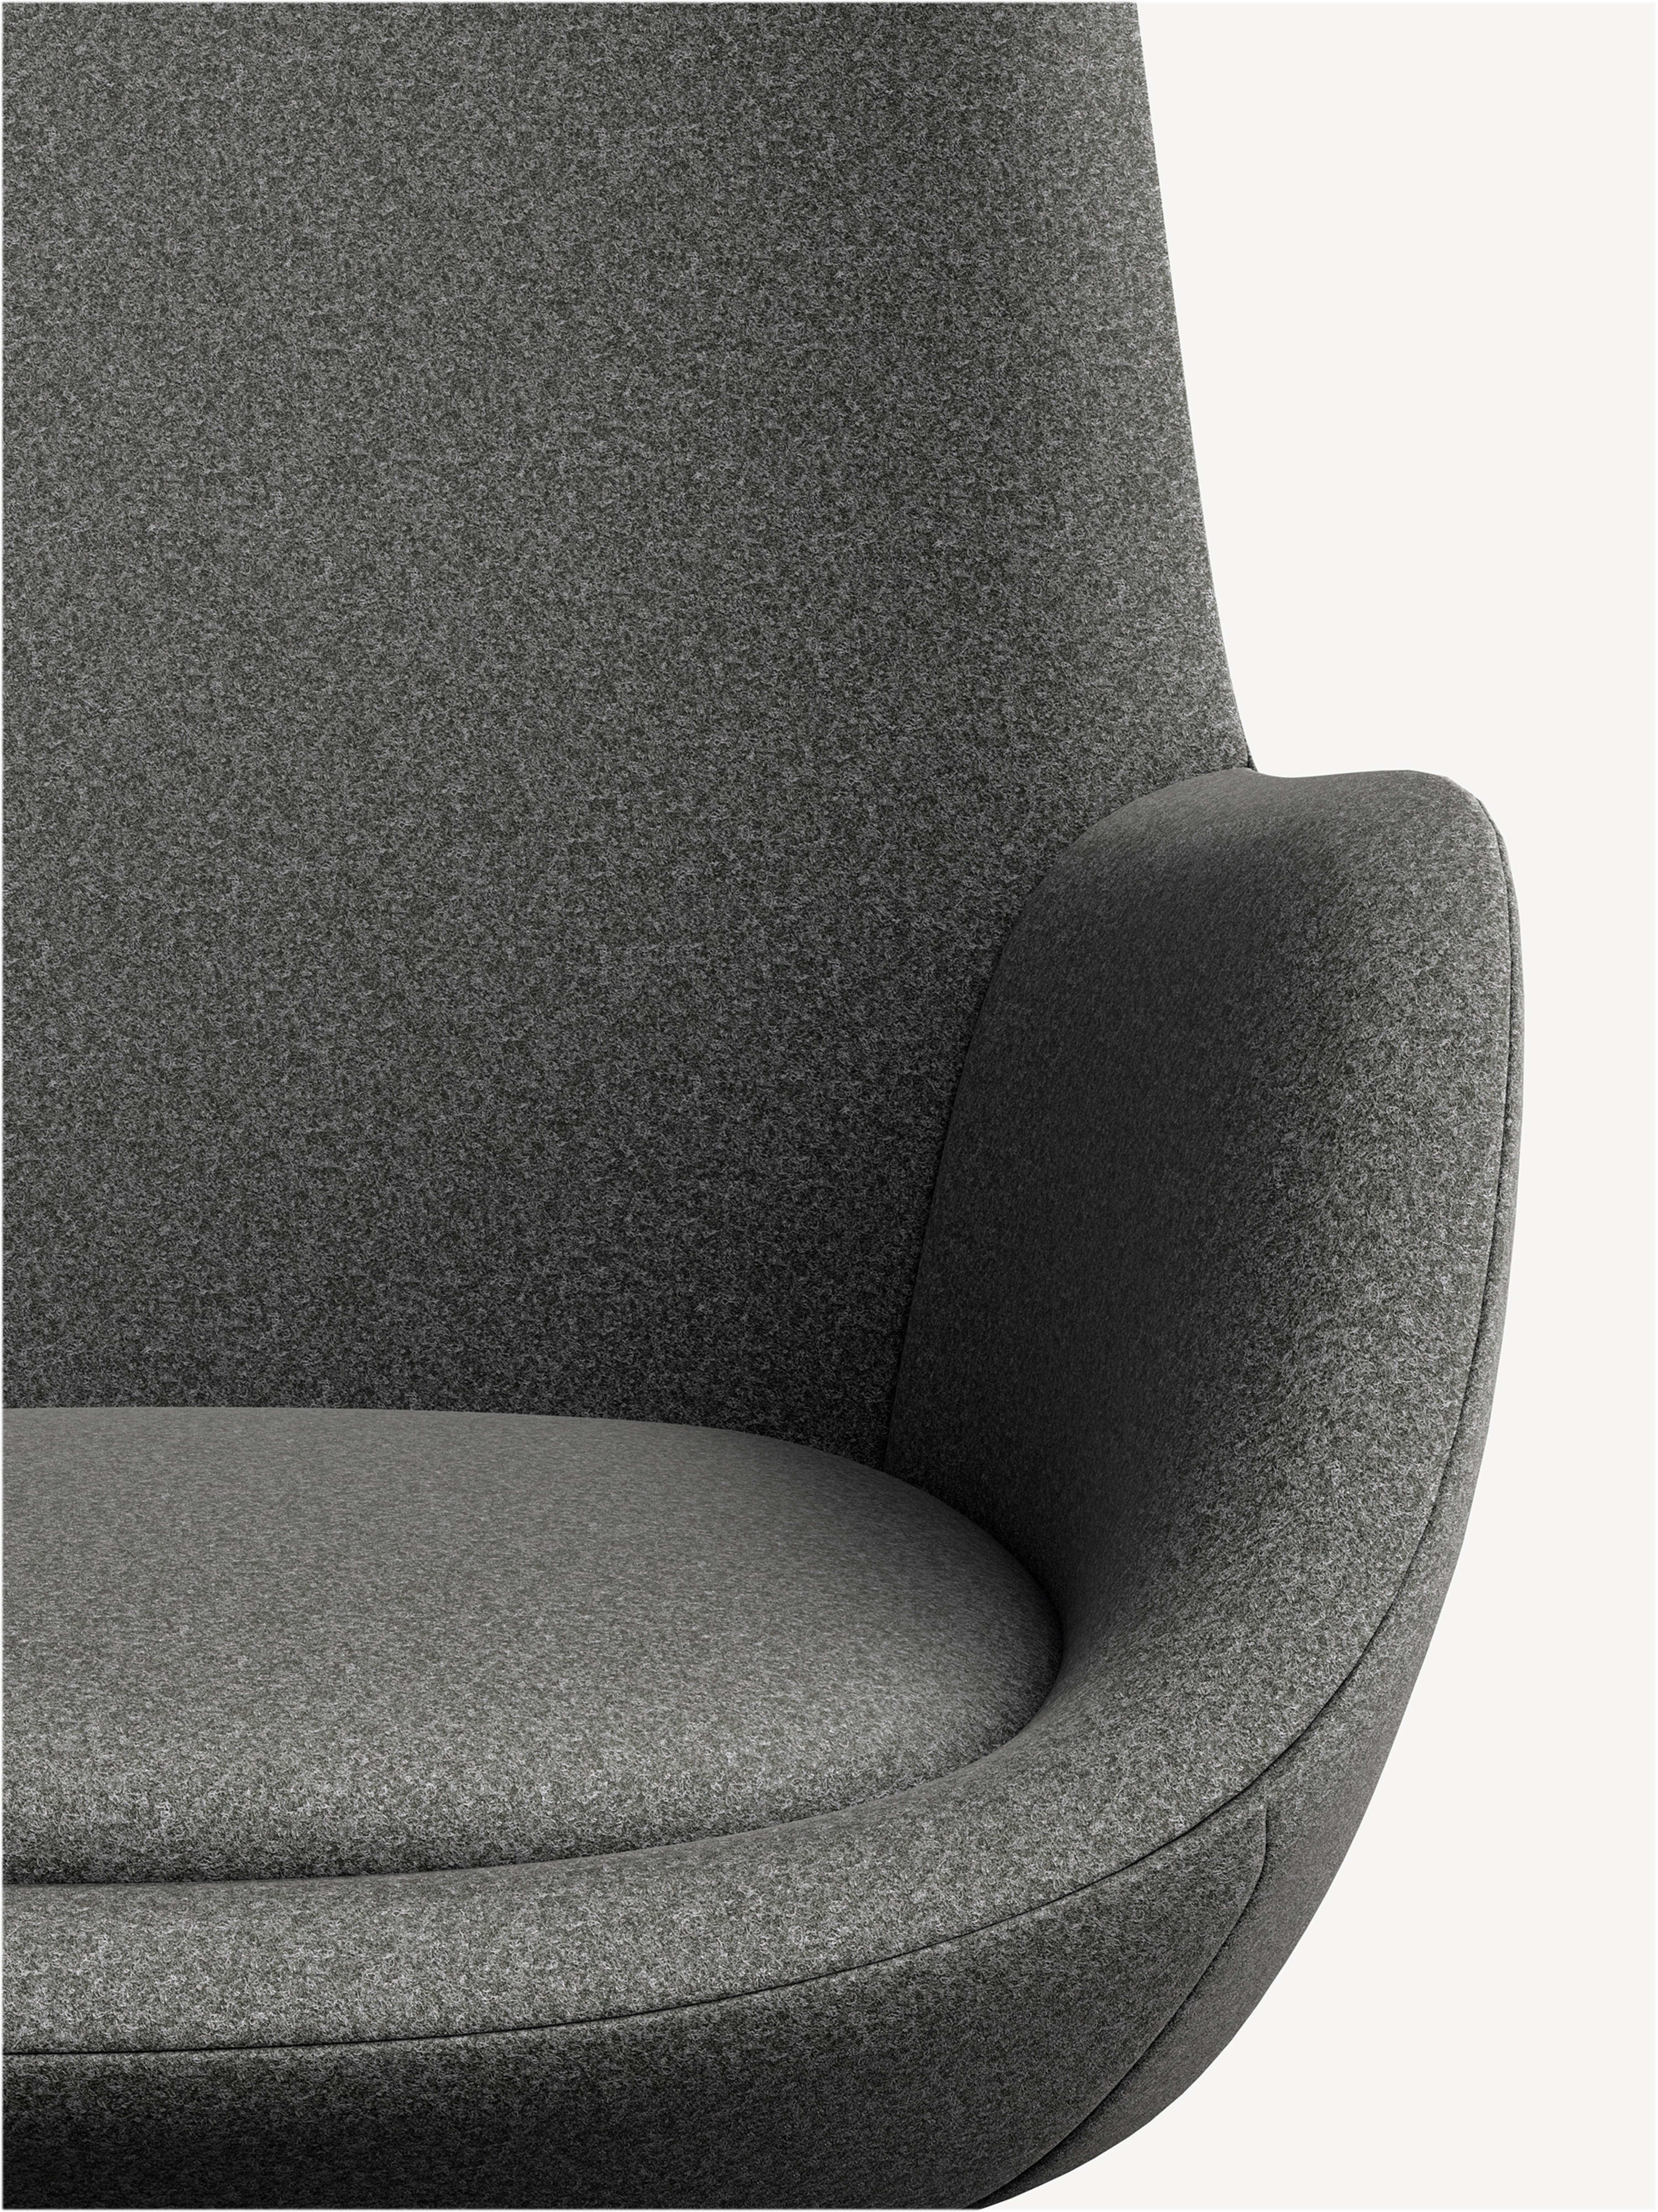 Allsteel Vicinity Lounge Chair